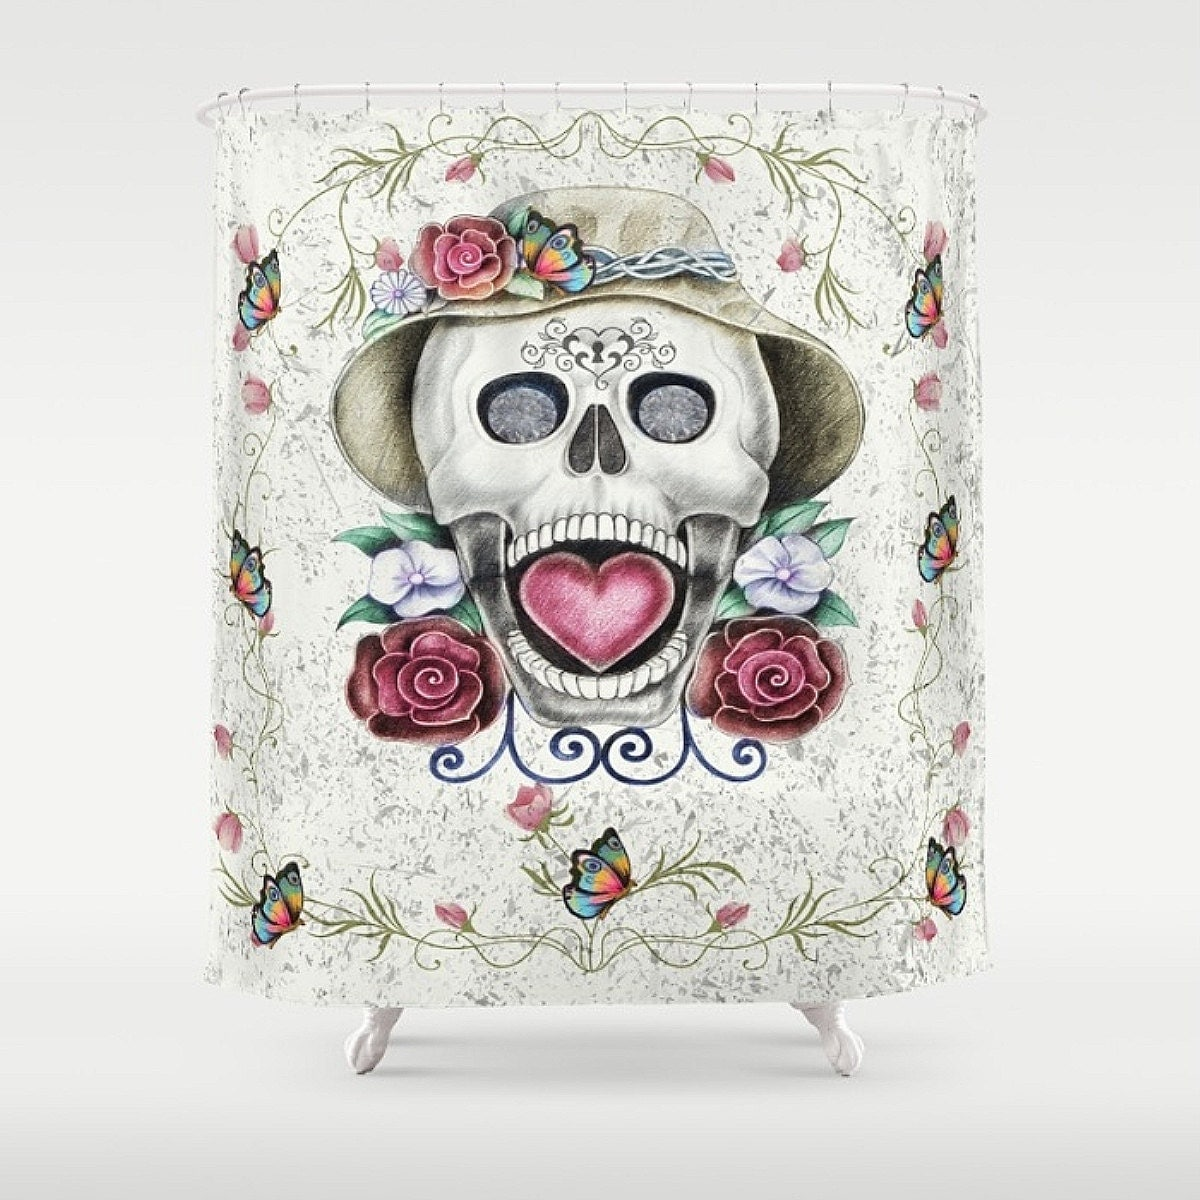 sugar skull shower curtain summer love by folkandfunky on etsy. Black Bedroom Furniture Sets. Home Design Ideas